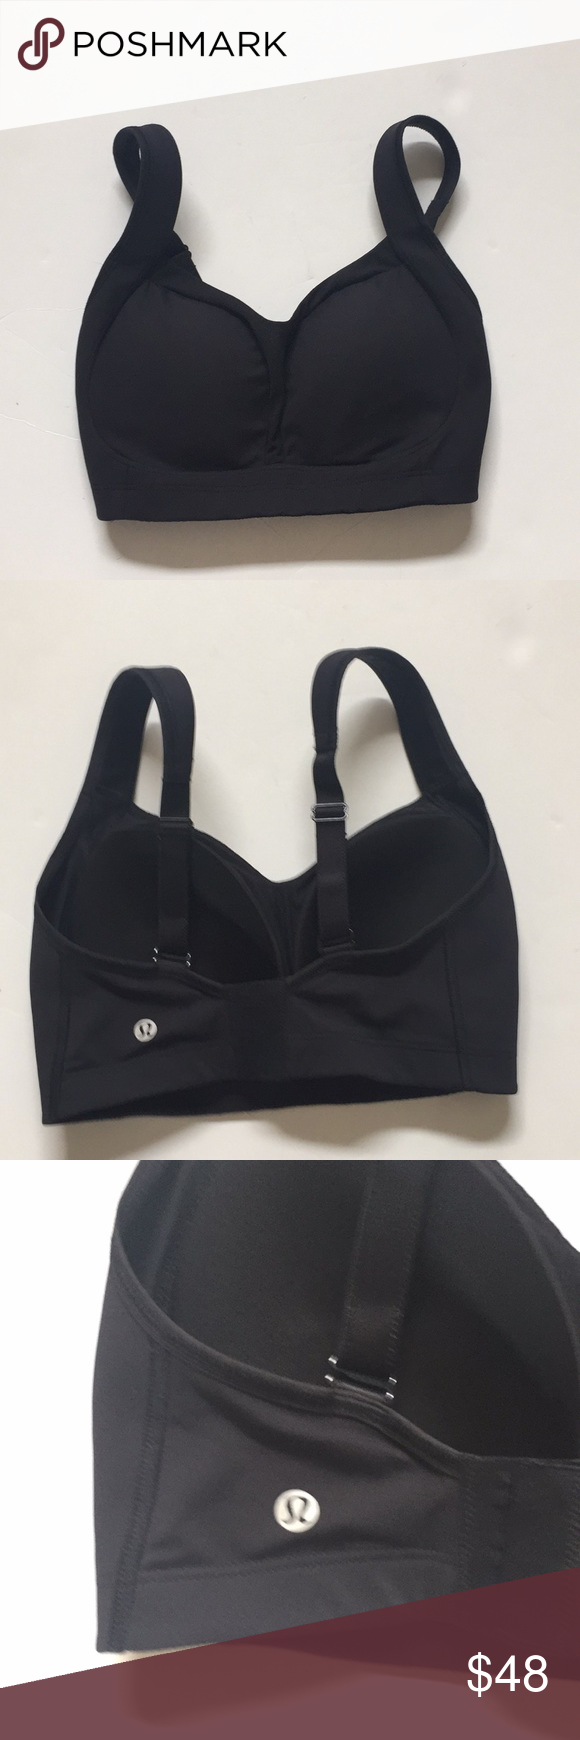 cbd45e9755332 Lululemon ta ta tamer sports bra adjustable black Lululemon I believe is  the ta ta tamer